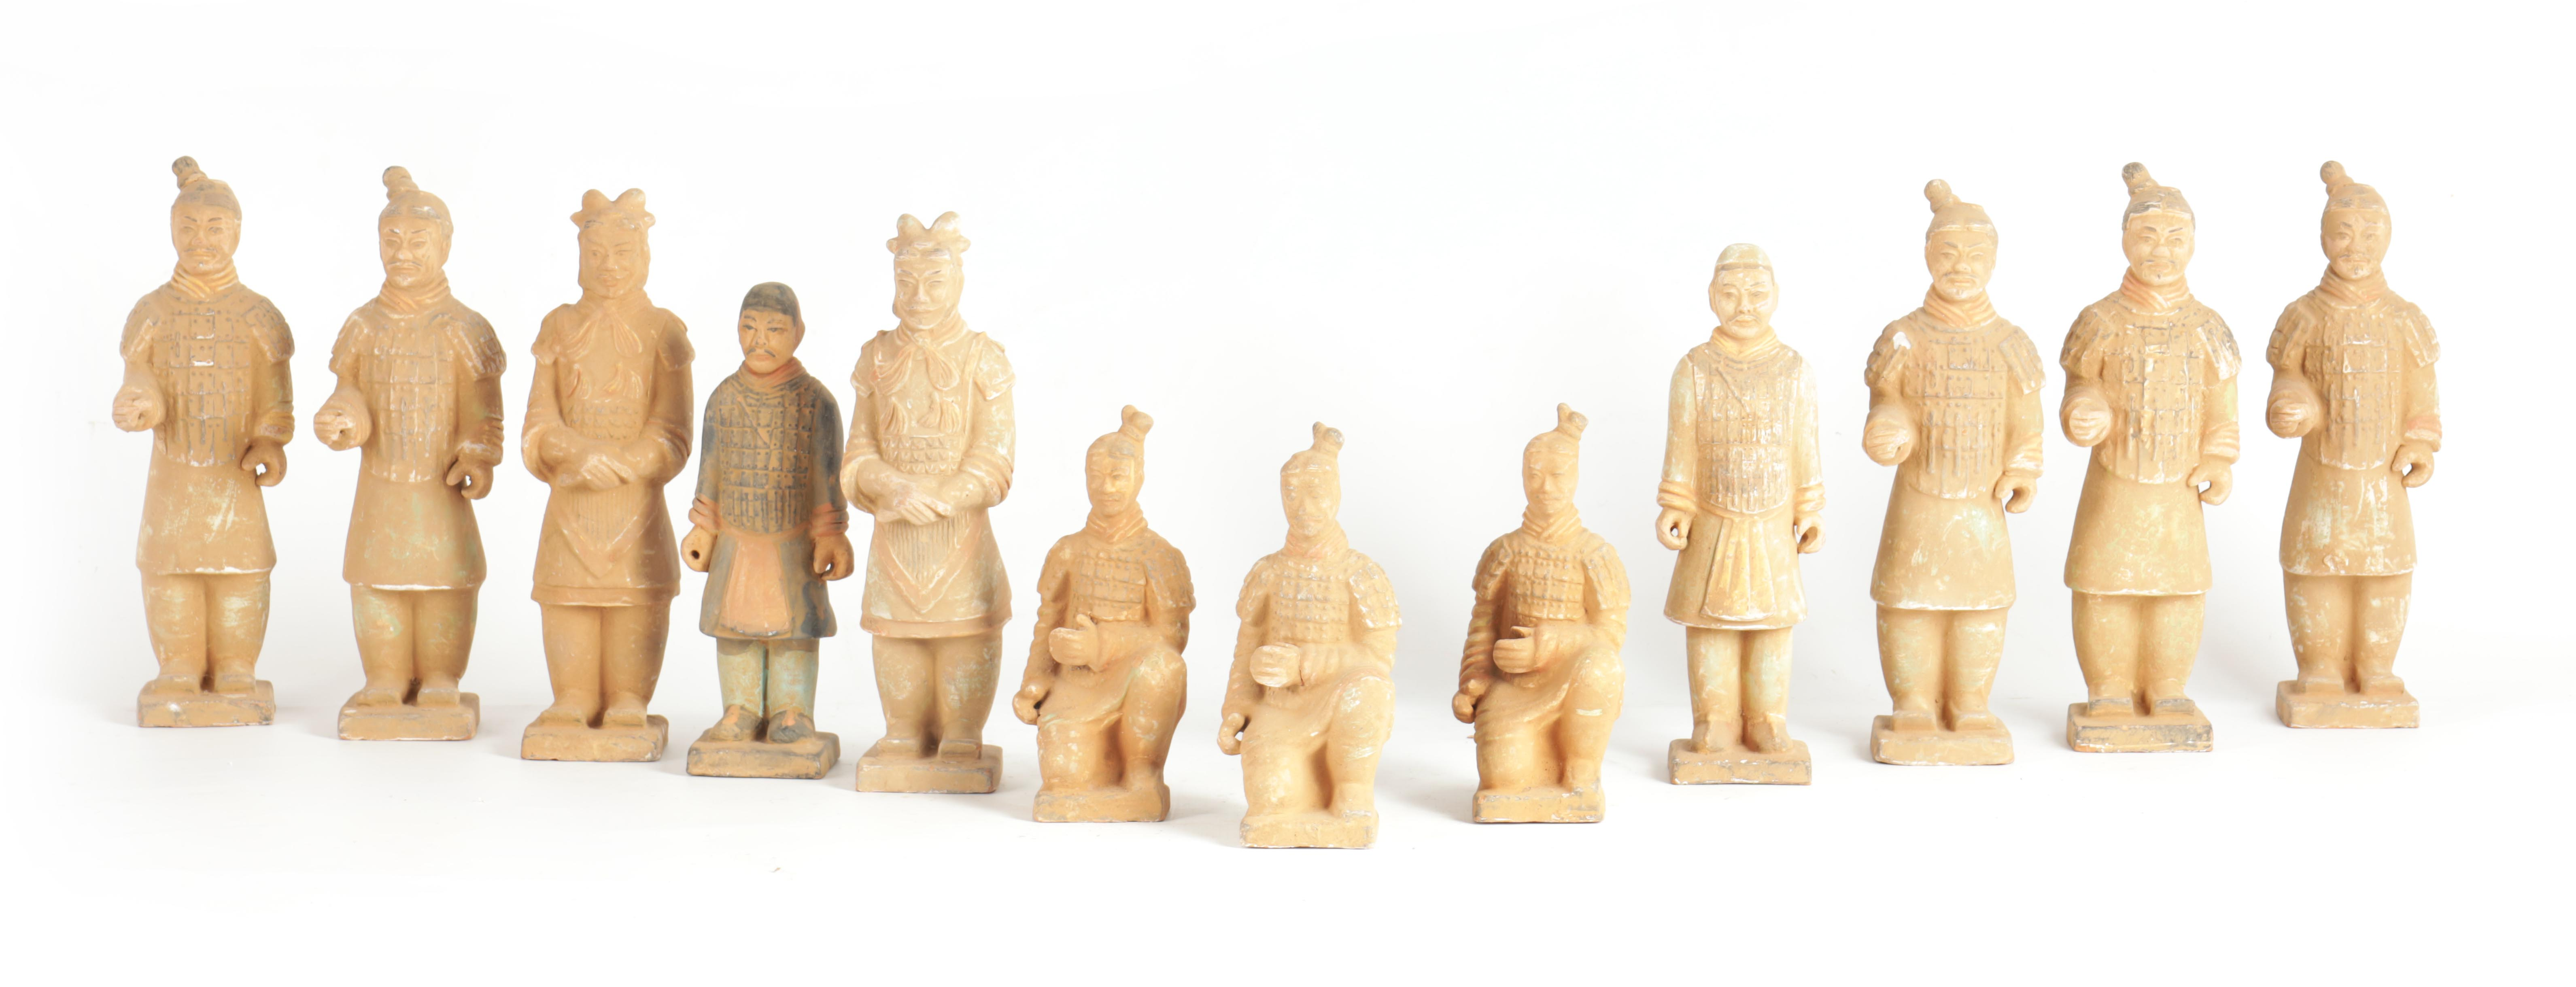 A SET OF 12 20TH CENTURY CHINESE FIGURES MODELLED AS THE TERRACOTTA ARMY depicting soldiers in